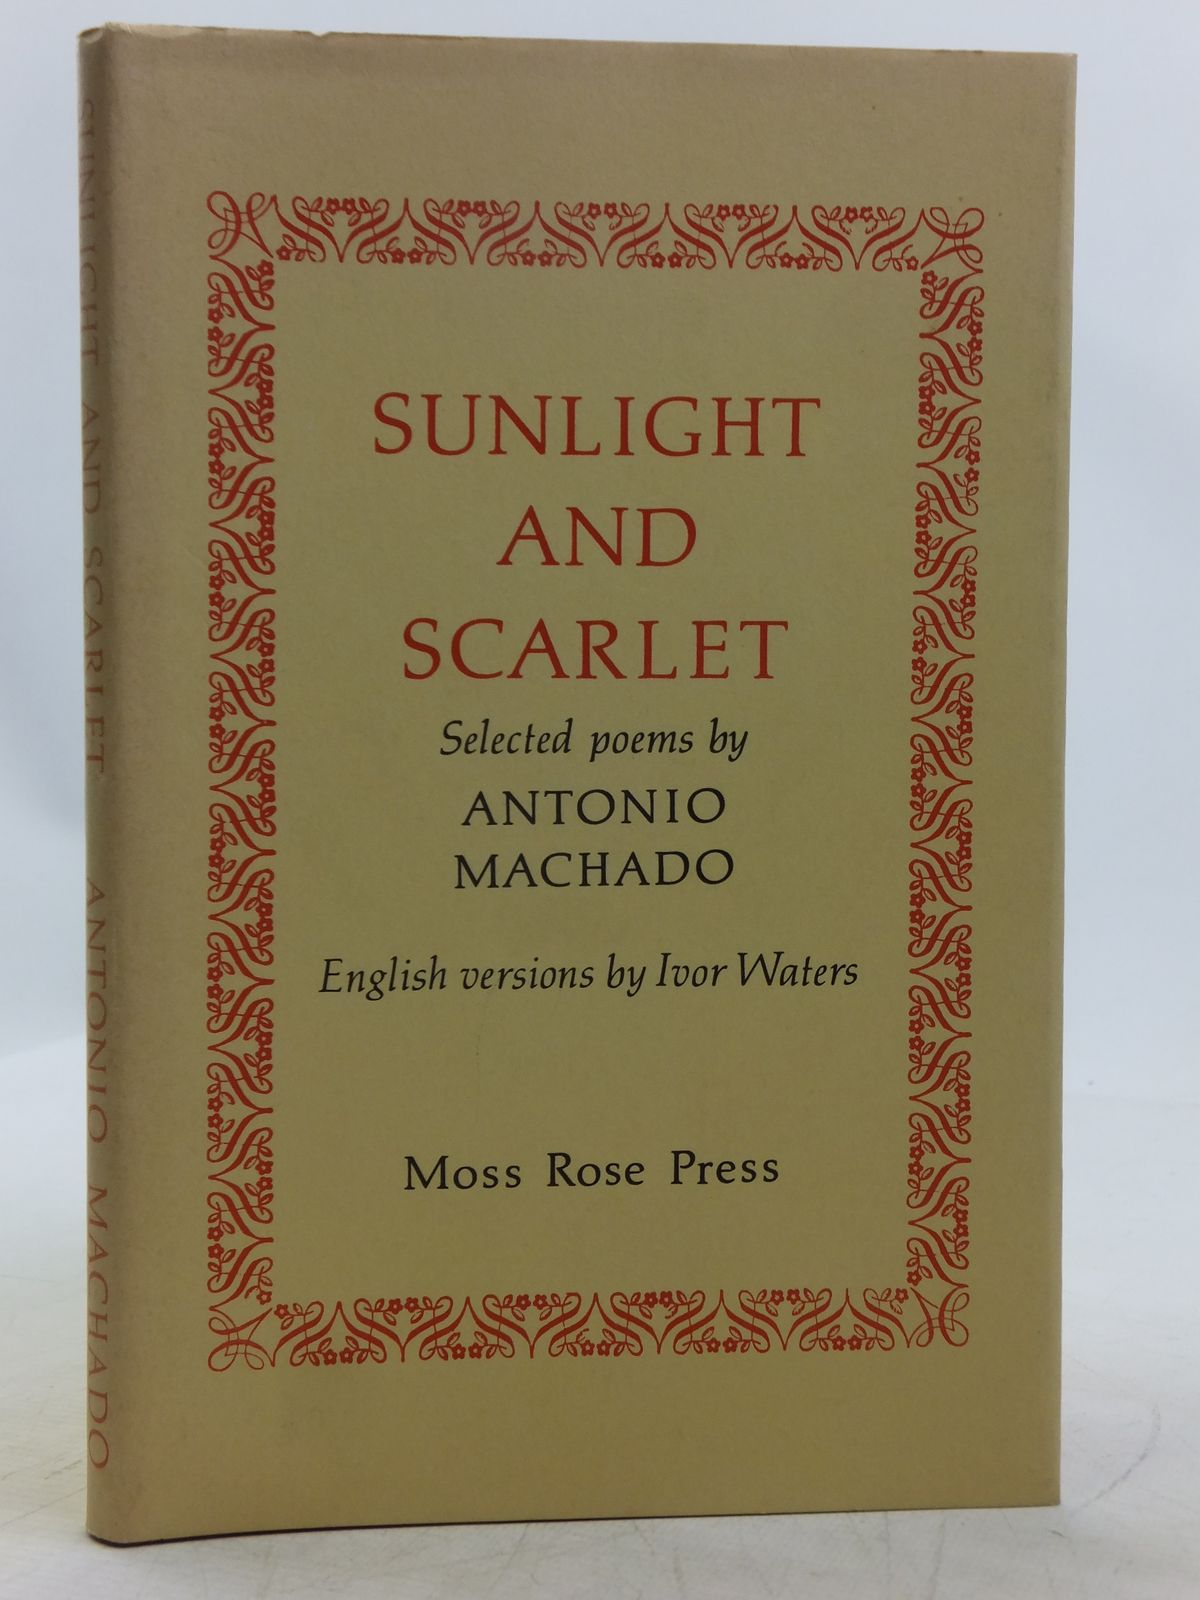 Photo of SUNLIGHT AND SCARLET written by Waters, Ivor Machado, Antonio published by Moss Rose Press (STOCK CODE: 2119030)  for sale by Stella & Rose's Books